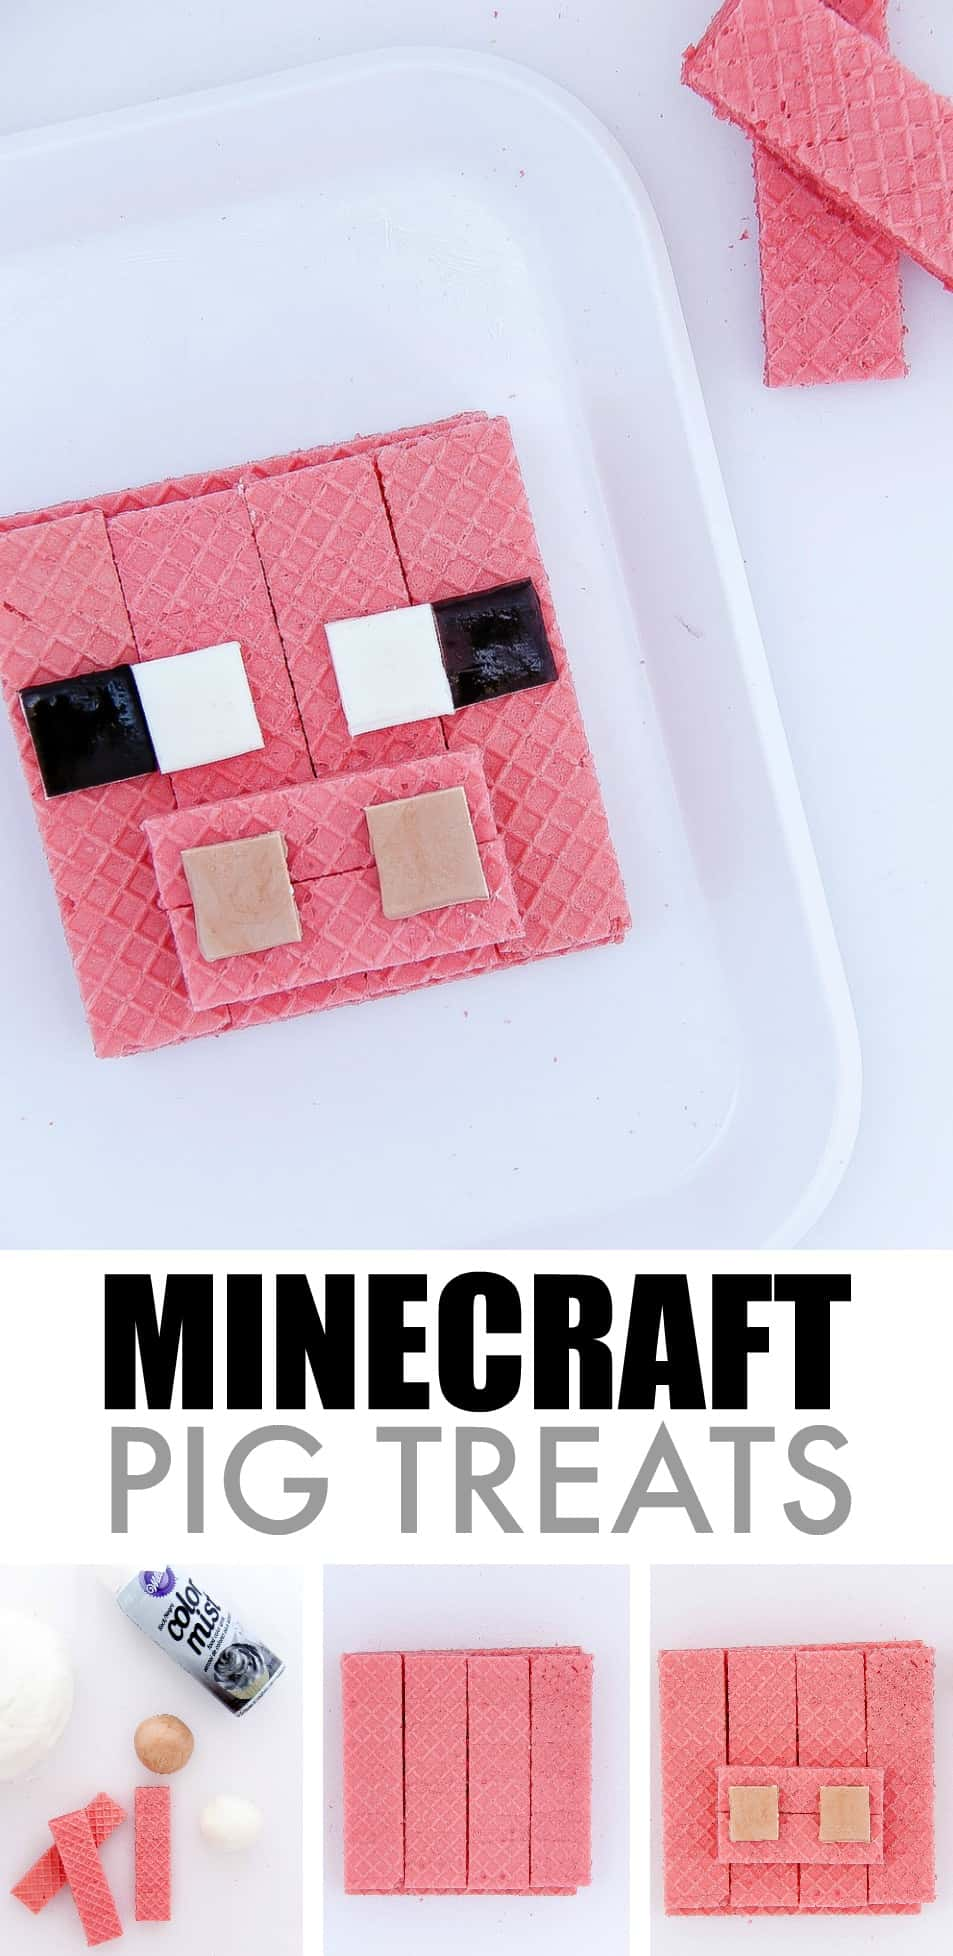 Easy Minecraft Pig treats to make for kids